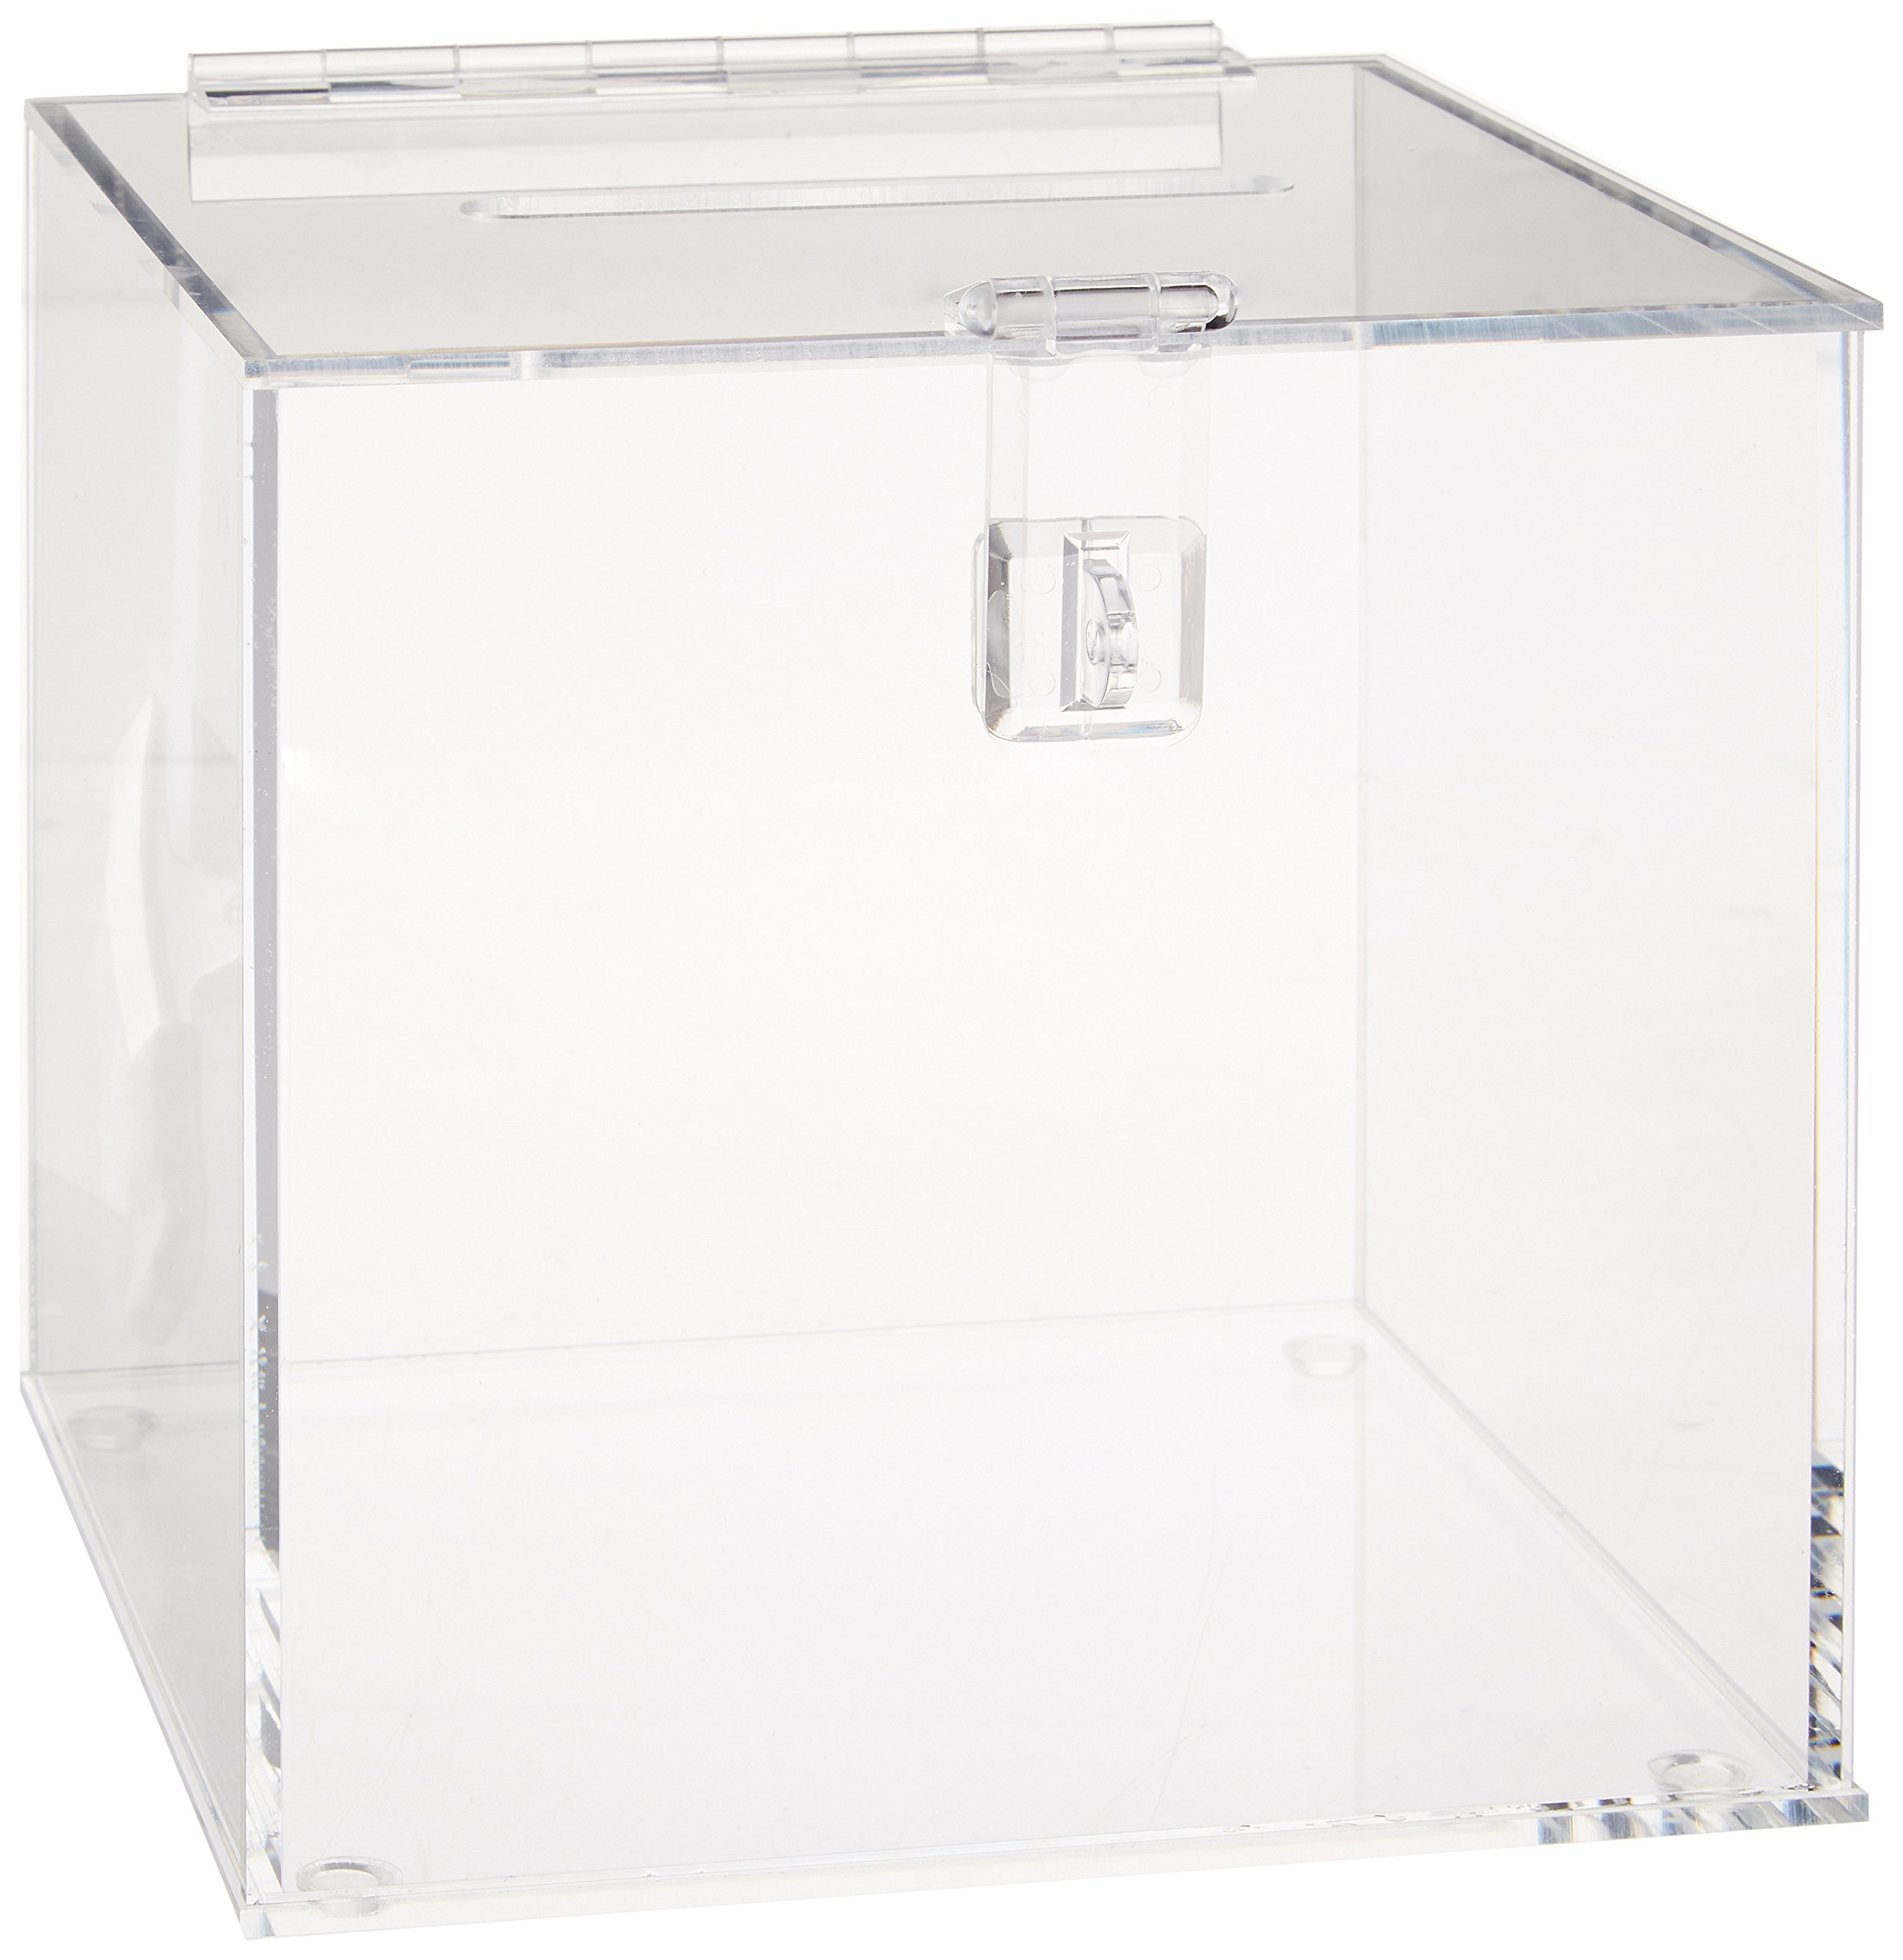 8-3//4 Width x 13-1//4 Height x 8-3//4 Depth 8-3//4 Width x 13-1//4 Height x 8-3//4 Depth IBI Scientific WH-80 Beta-Gard Acrylic 1Gallon Jug Waste Container with Hinged Lid